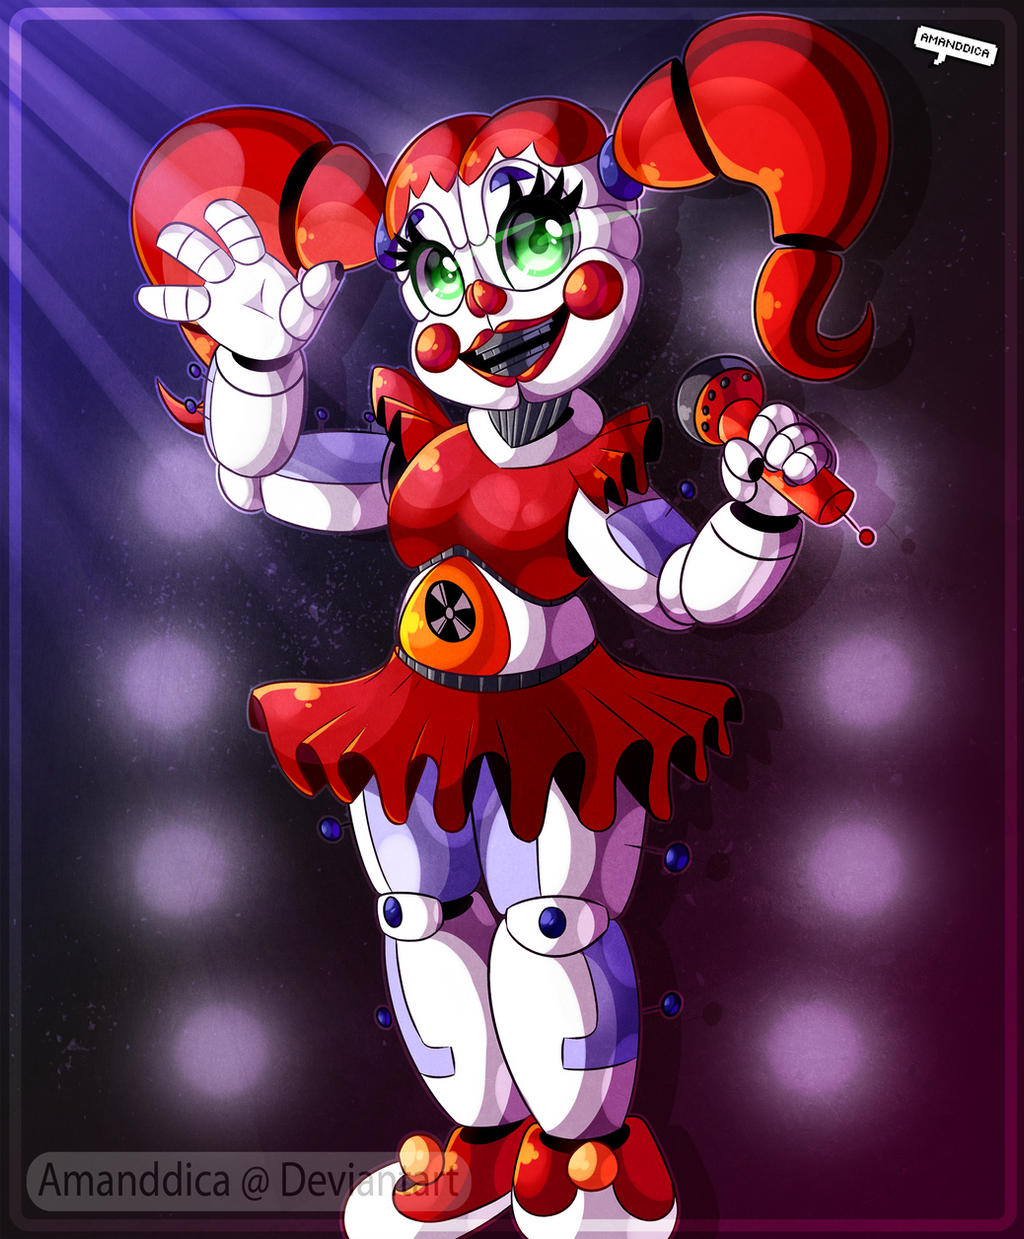 FNAF - Welcome to the Circus by Amanddica